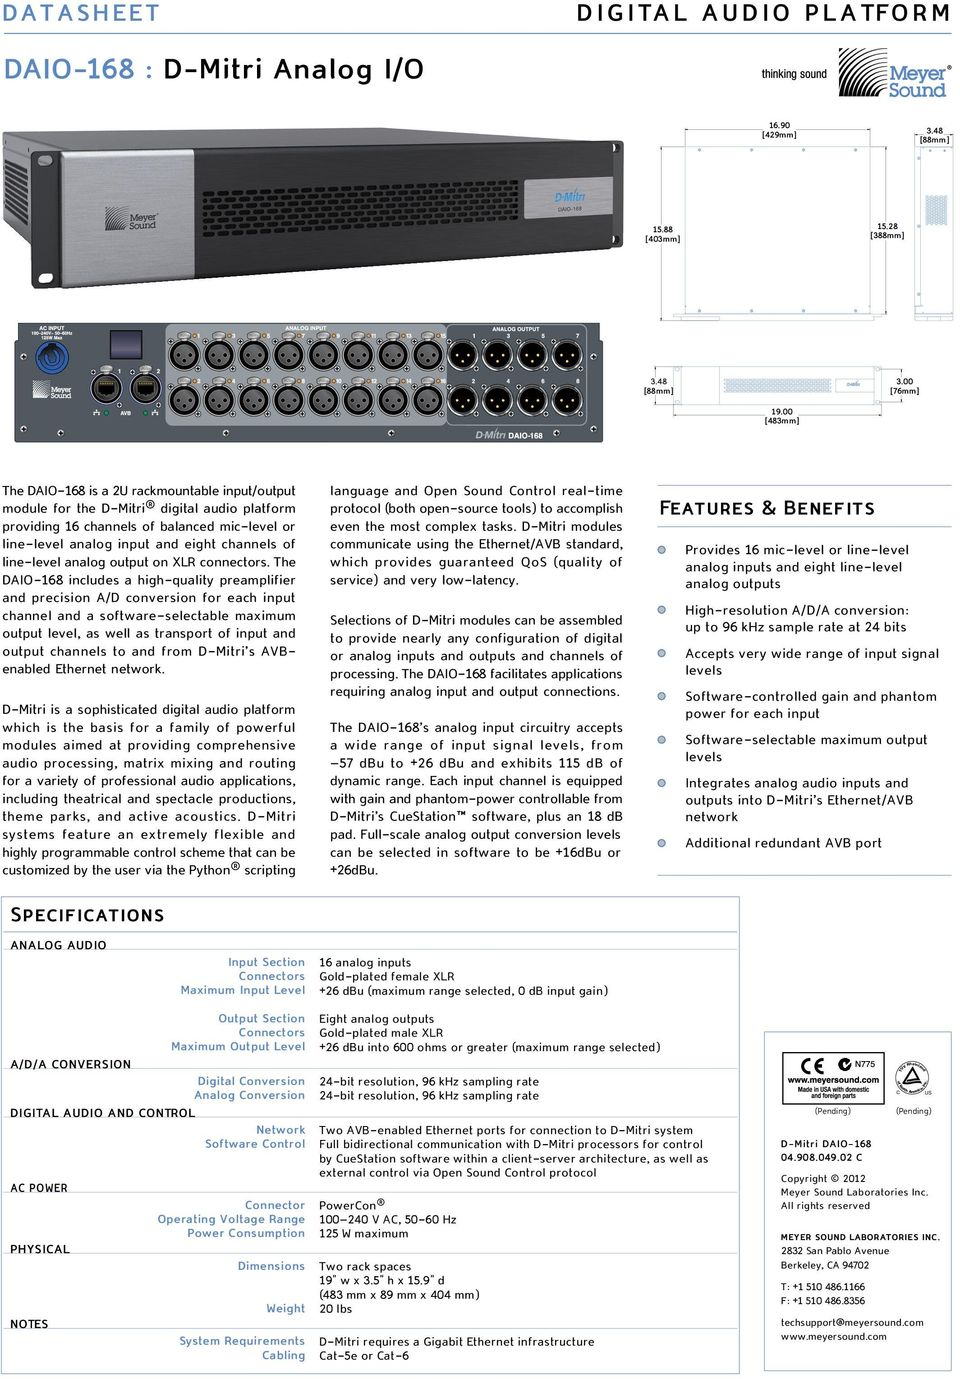 The DAIO-168 includes a high-quality preamplifier and precision A/D conversion for each input channel and a software-selectable maximum output level, as well as transport of input and output channels